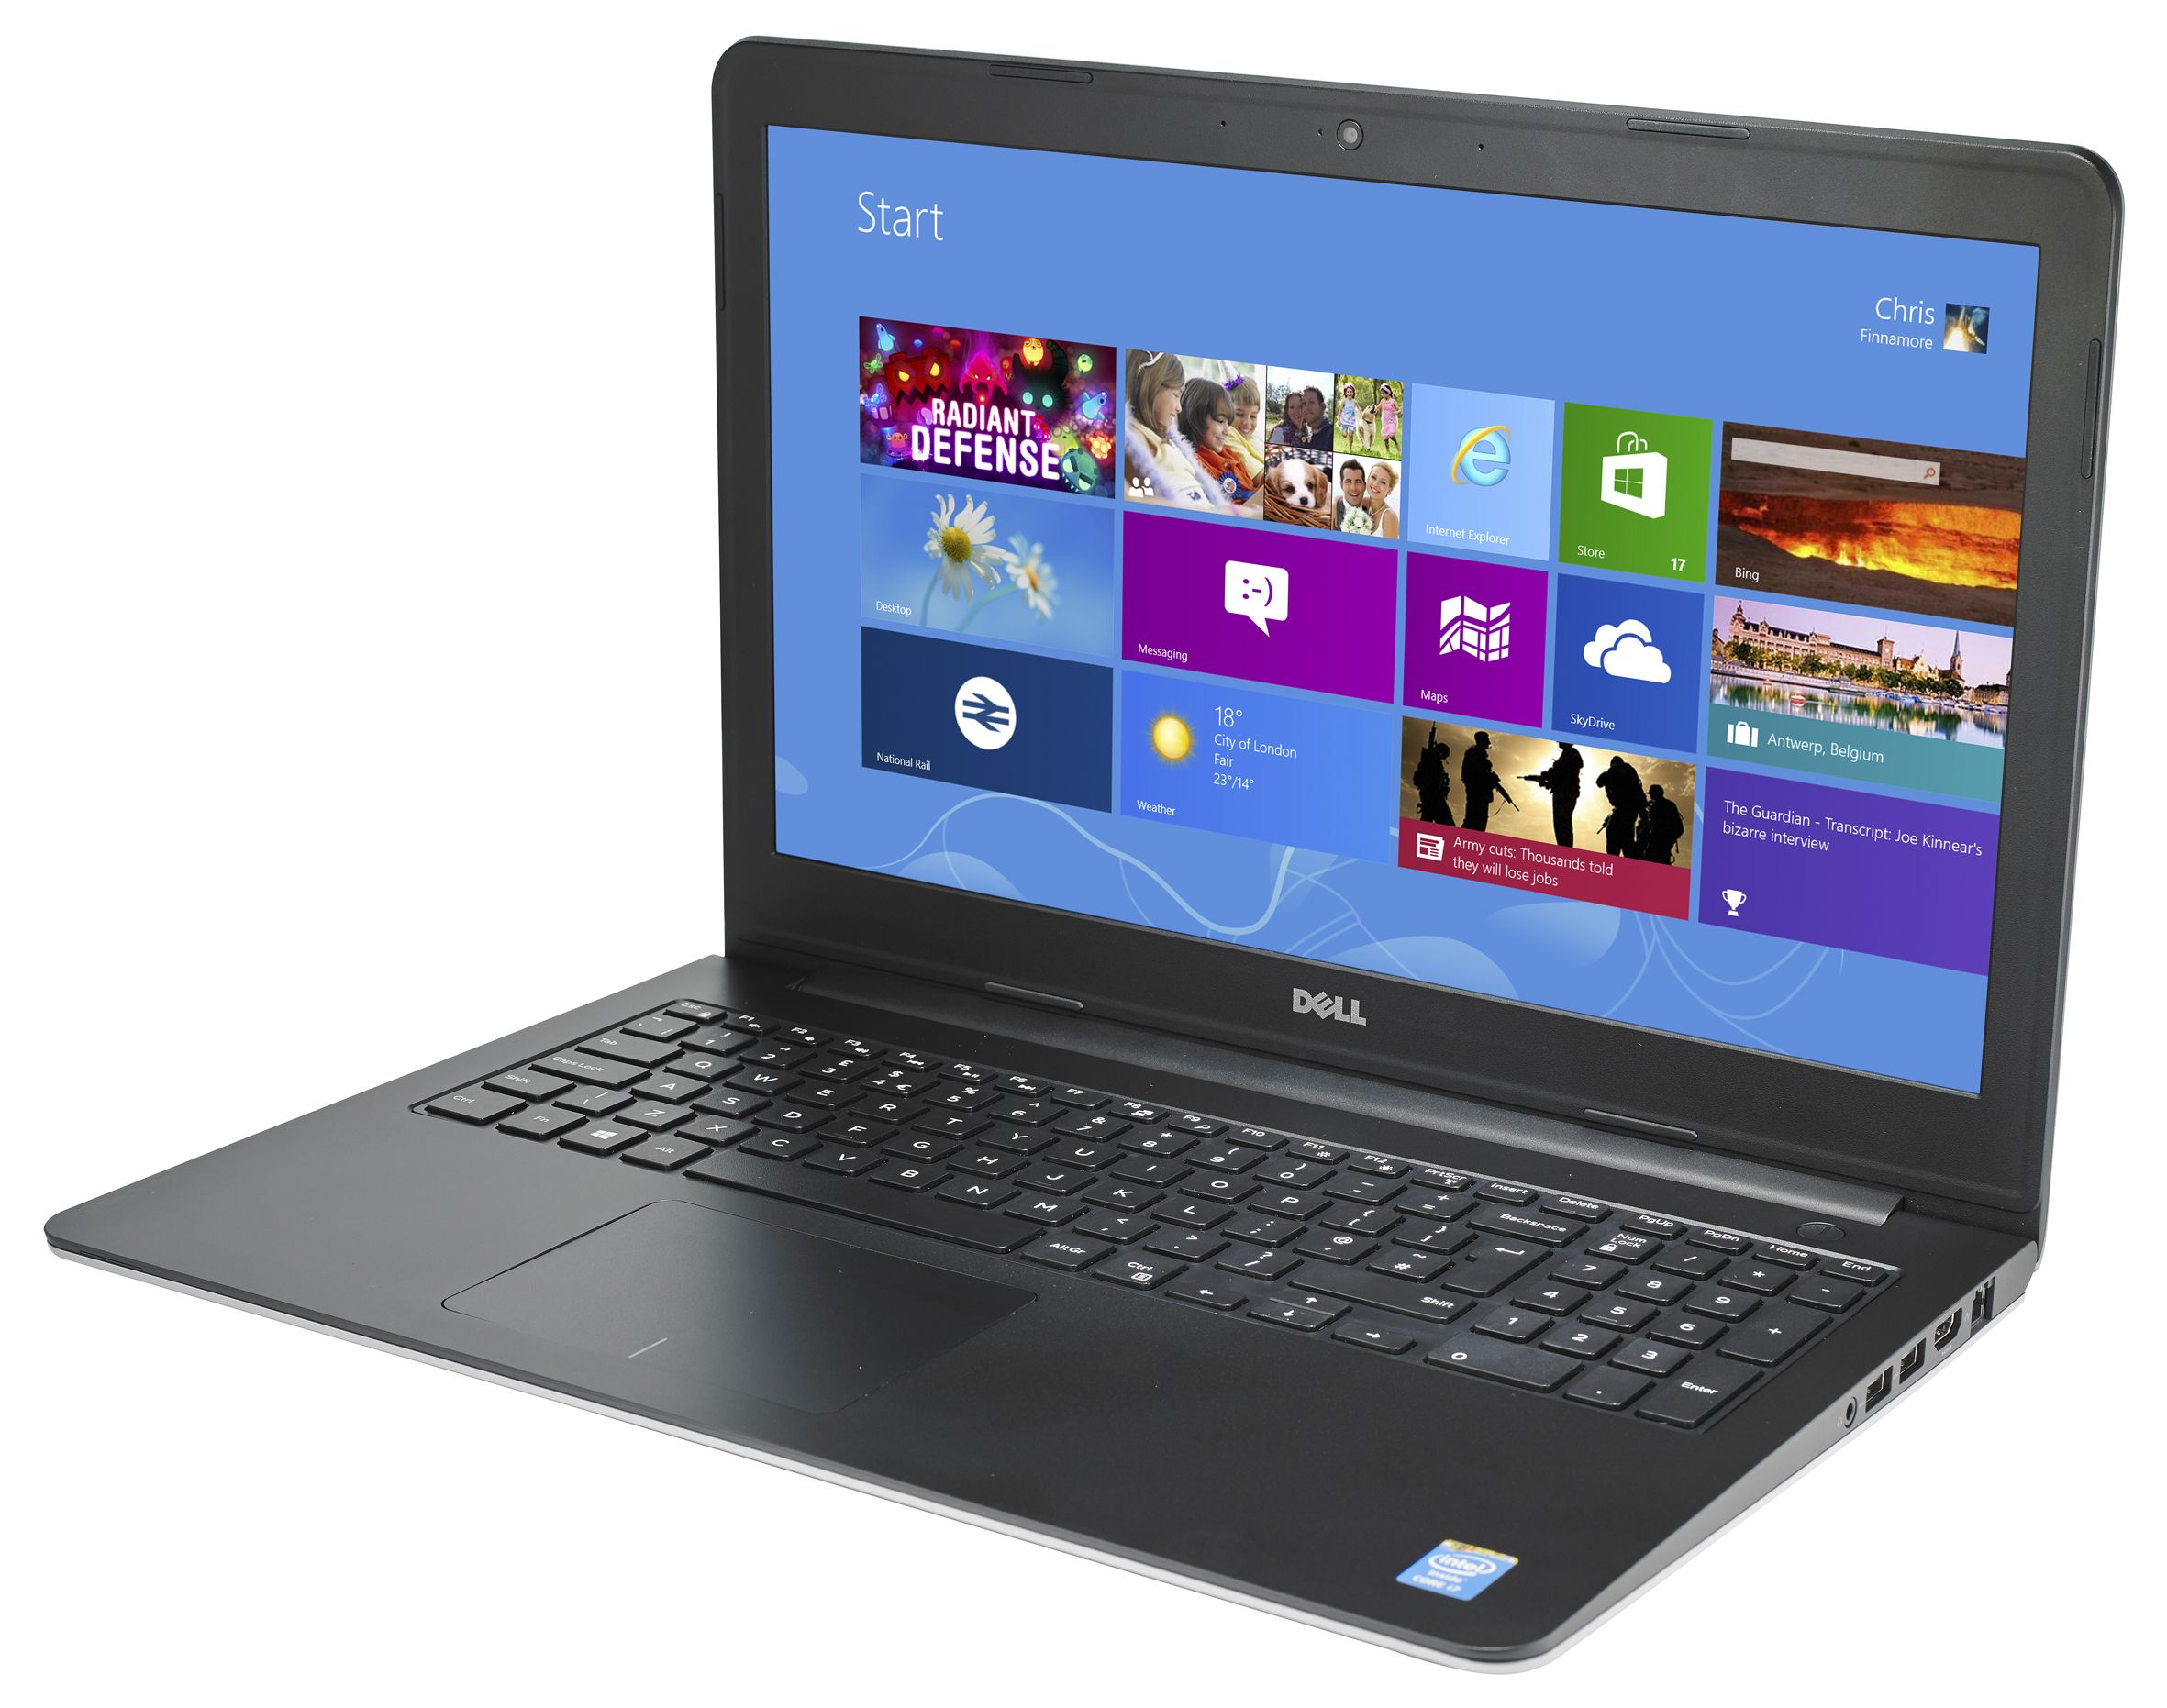 Dell Vostro 15 3558 Laptop Rs All Refurbished products in one place